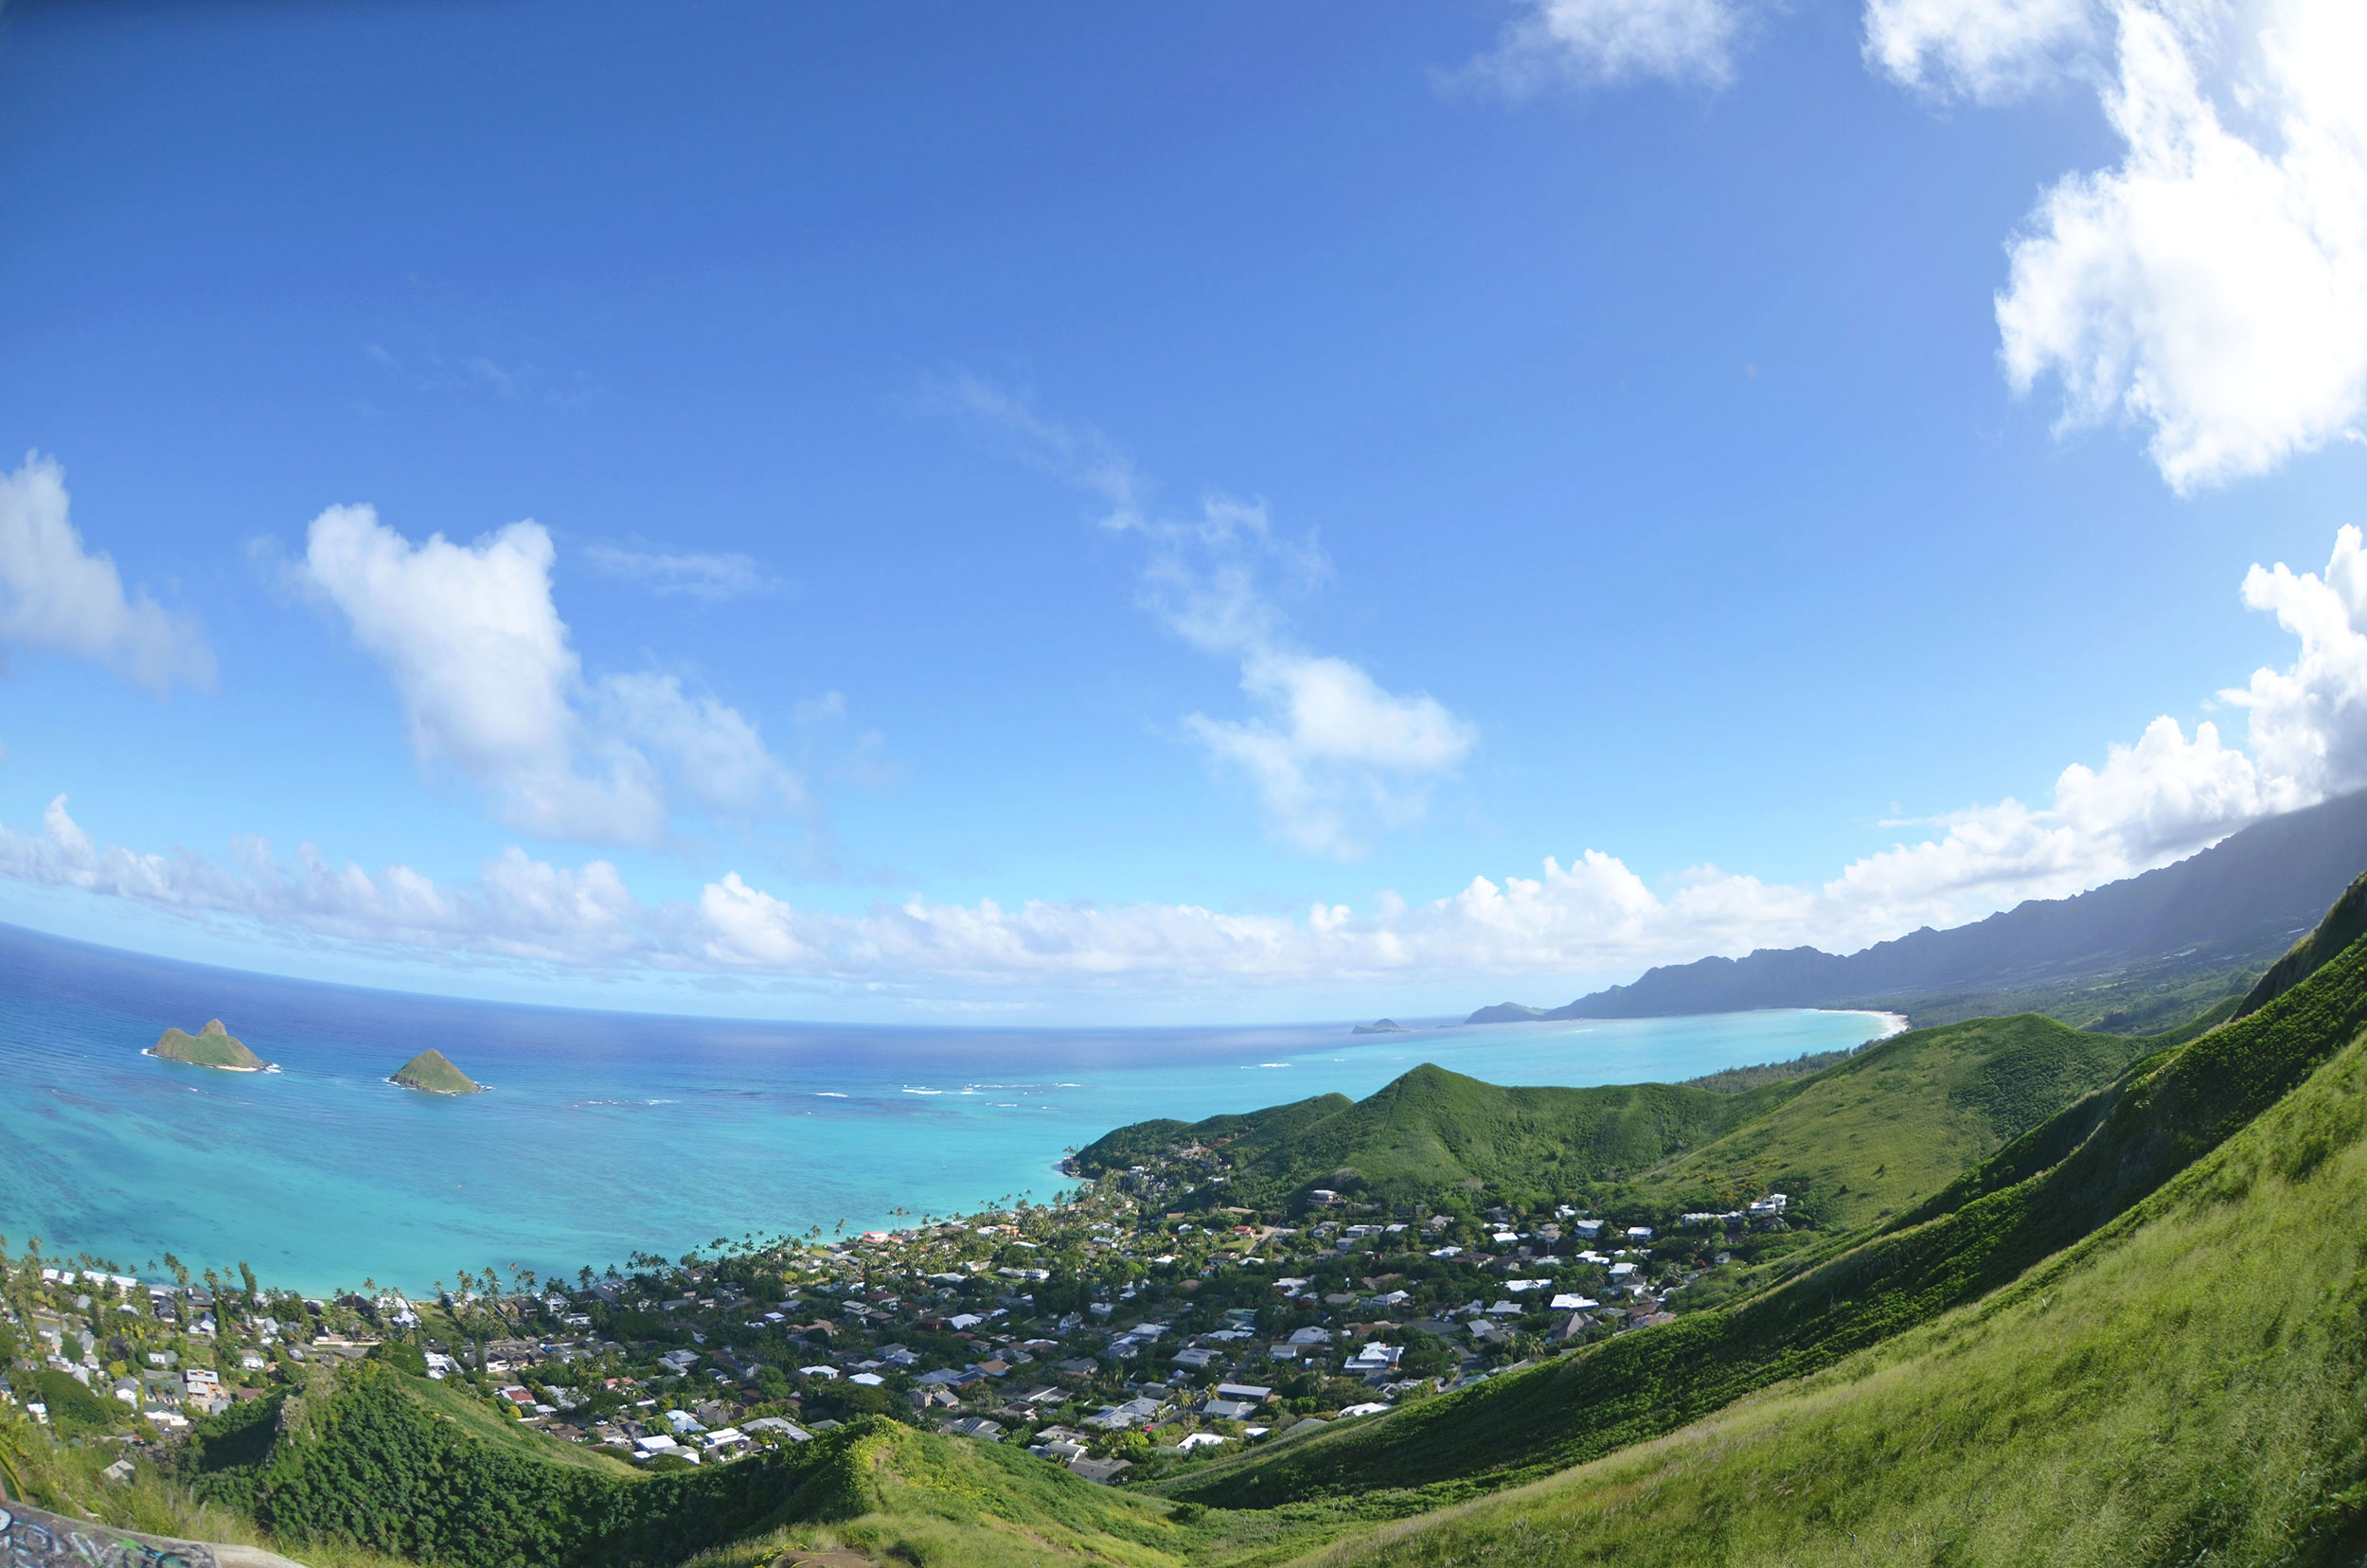 View from the Lanikai Pillboxes hike [  BUY PRINT  ]